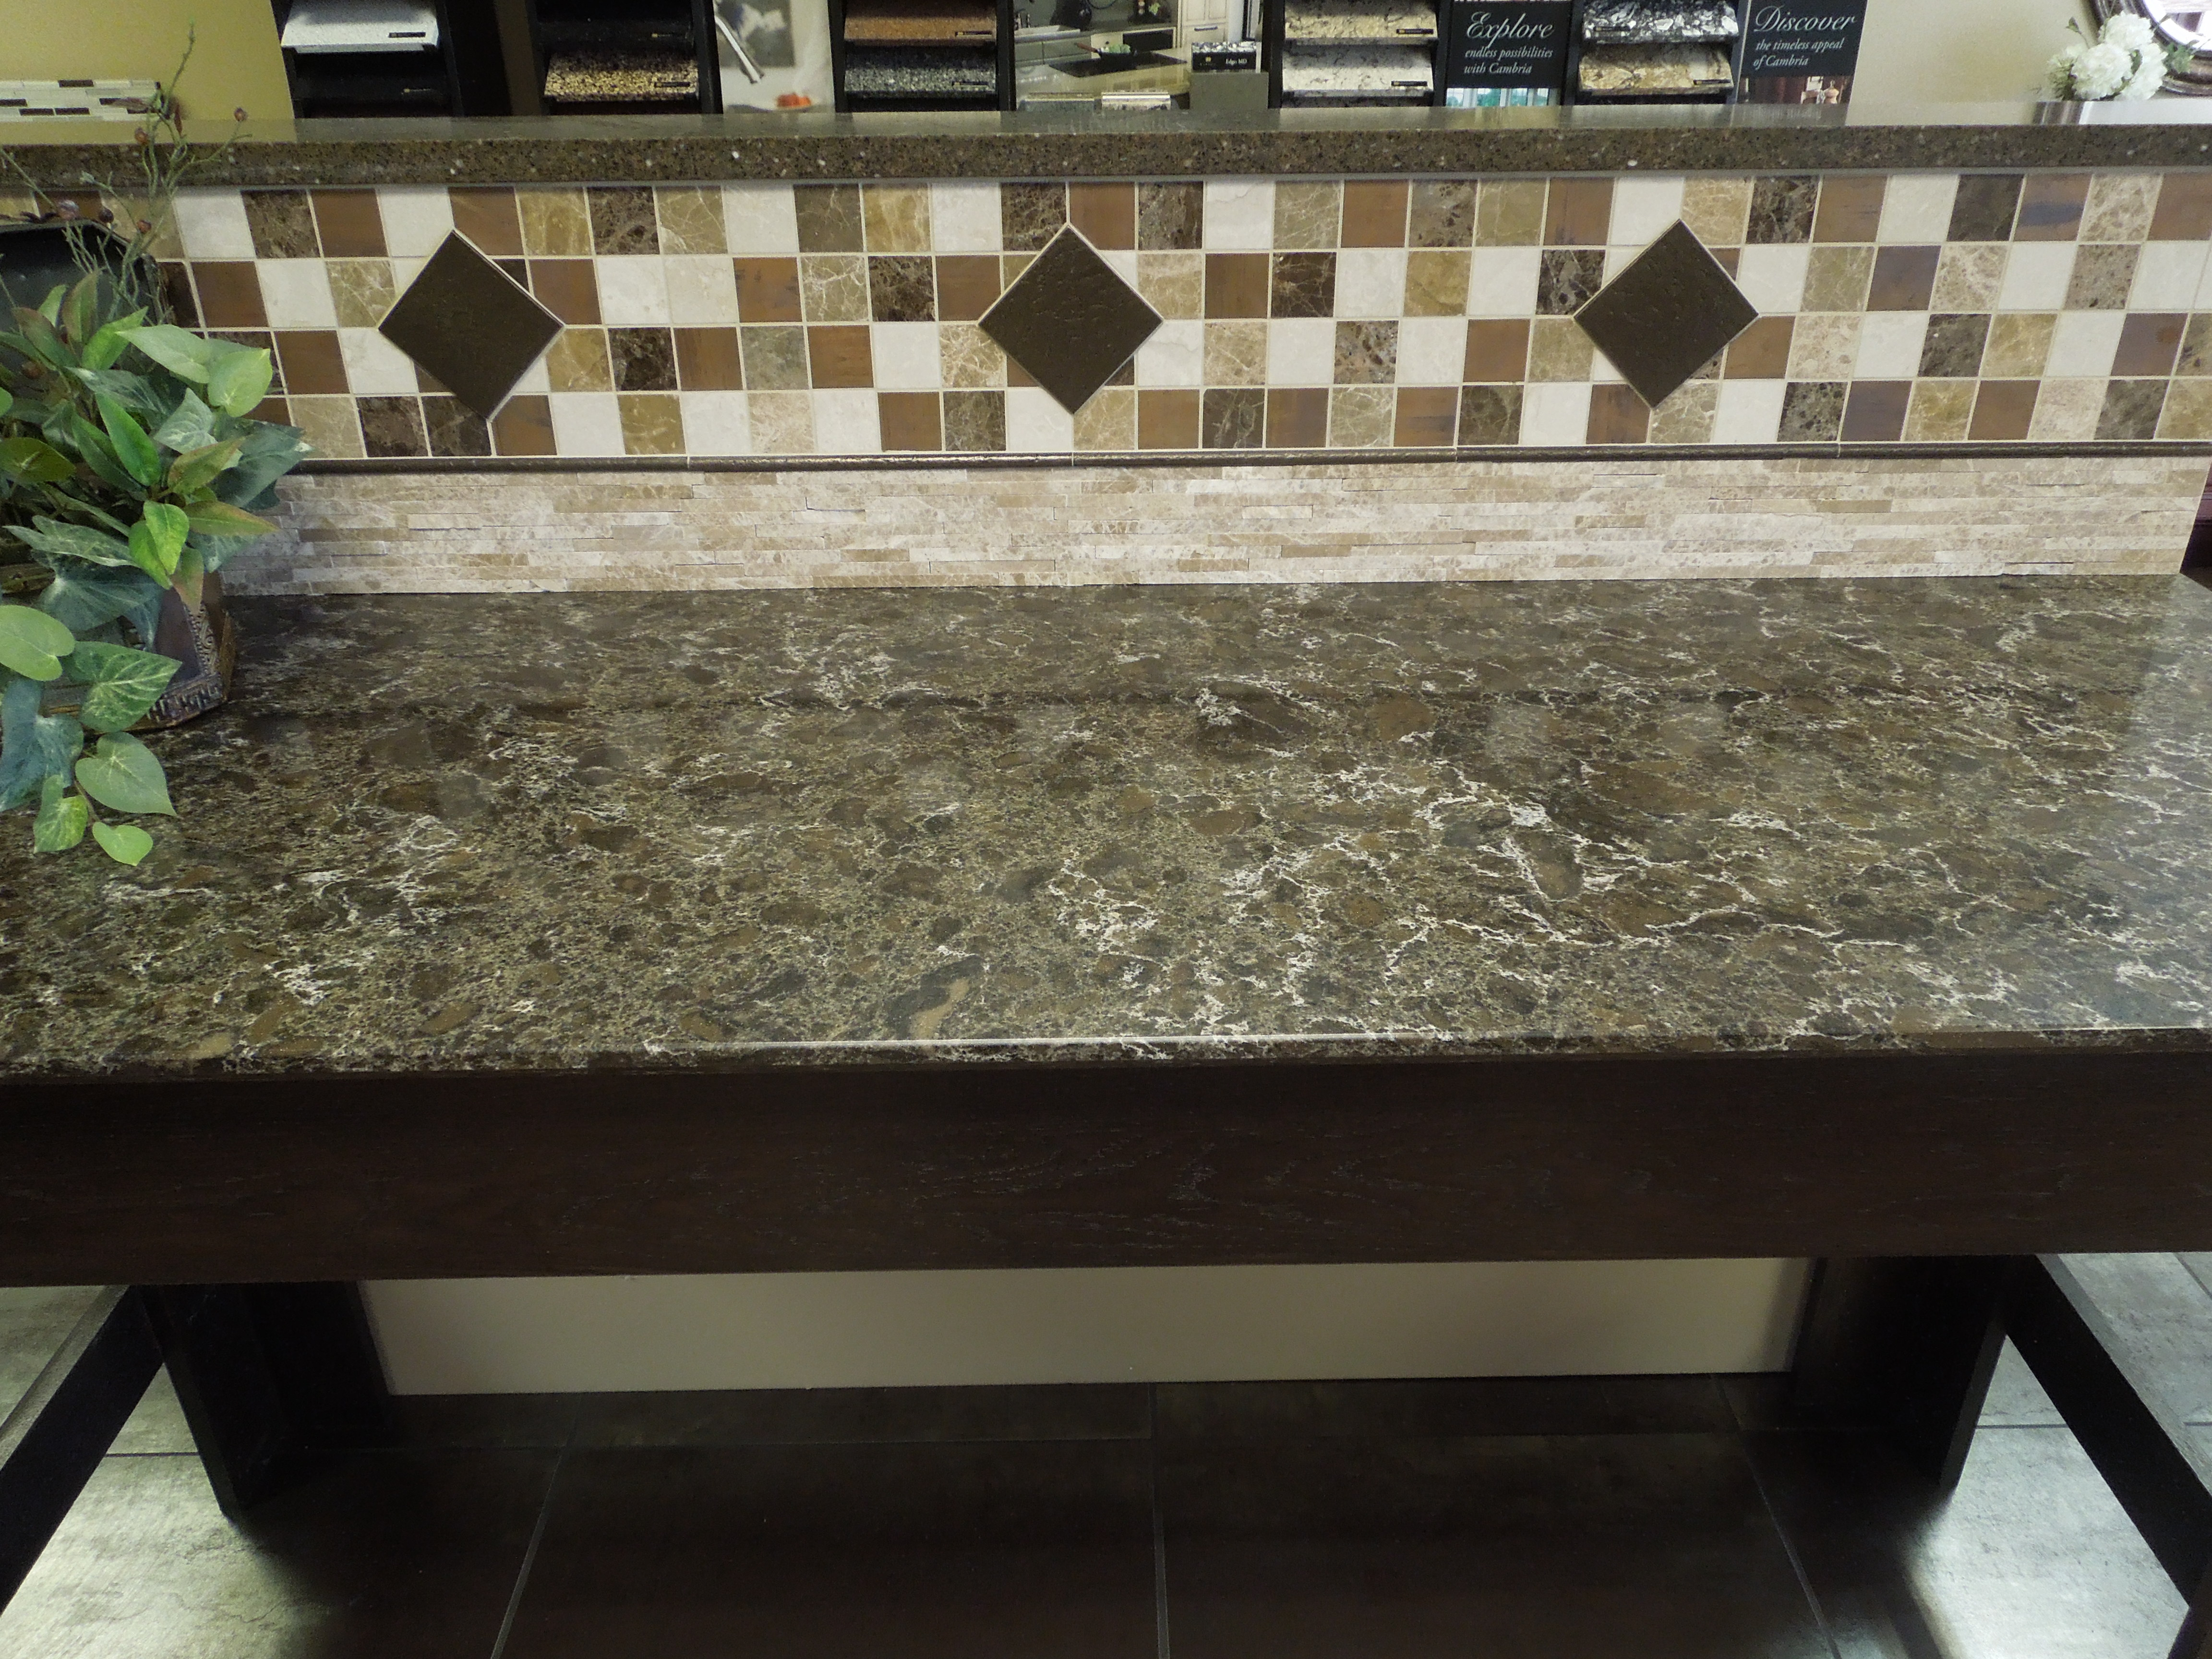 Whats a countertop without awesome tile backsplash creative random 22 tile with 44 metallic separated with metallic pencil strip mosiac tile backsplash dailygadgetfo Images